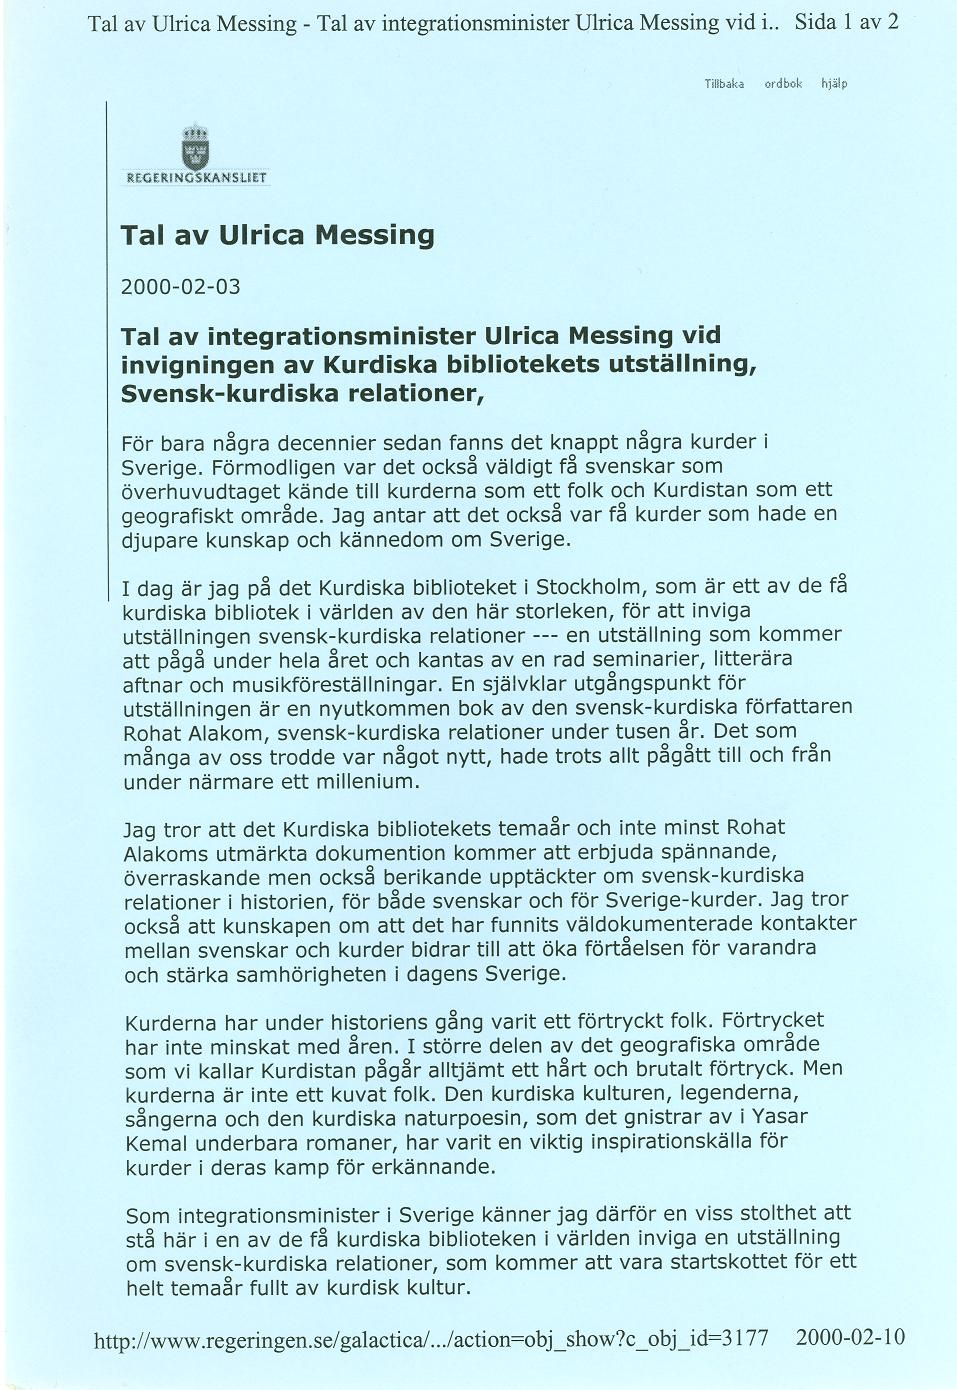 ultrica_messing